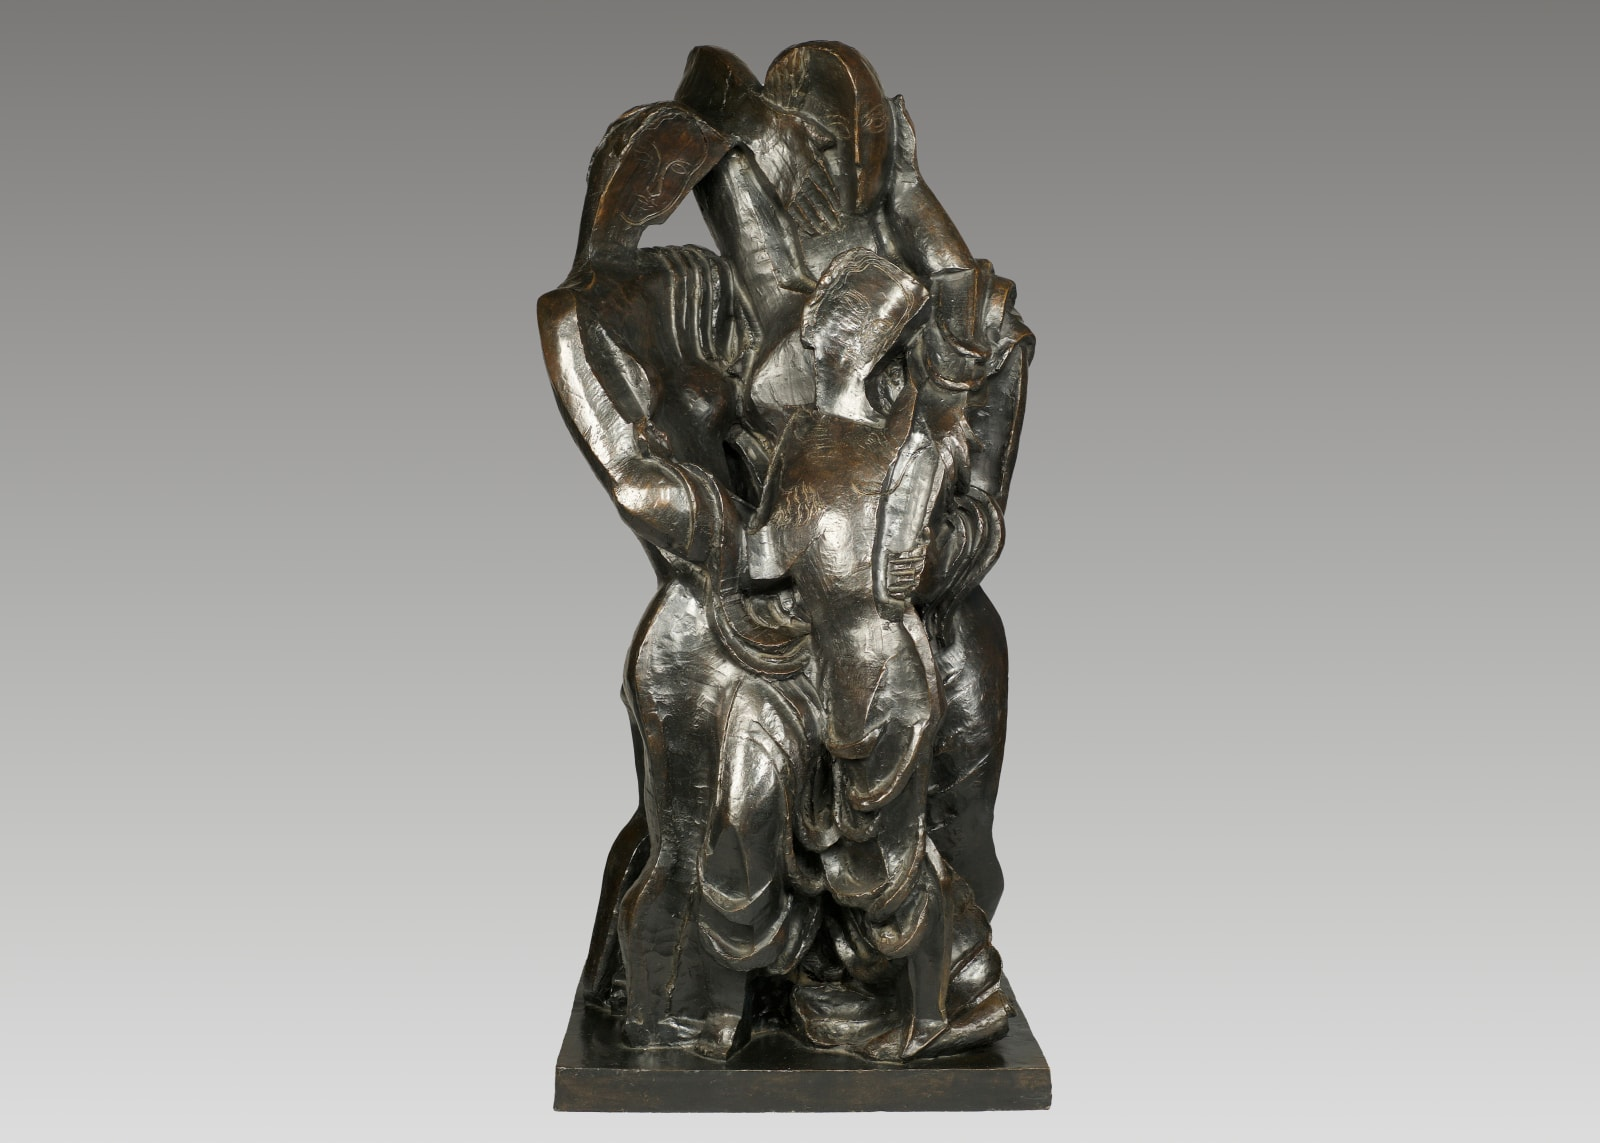 From Rodin to Moore